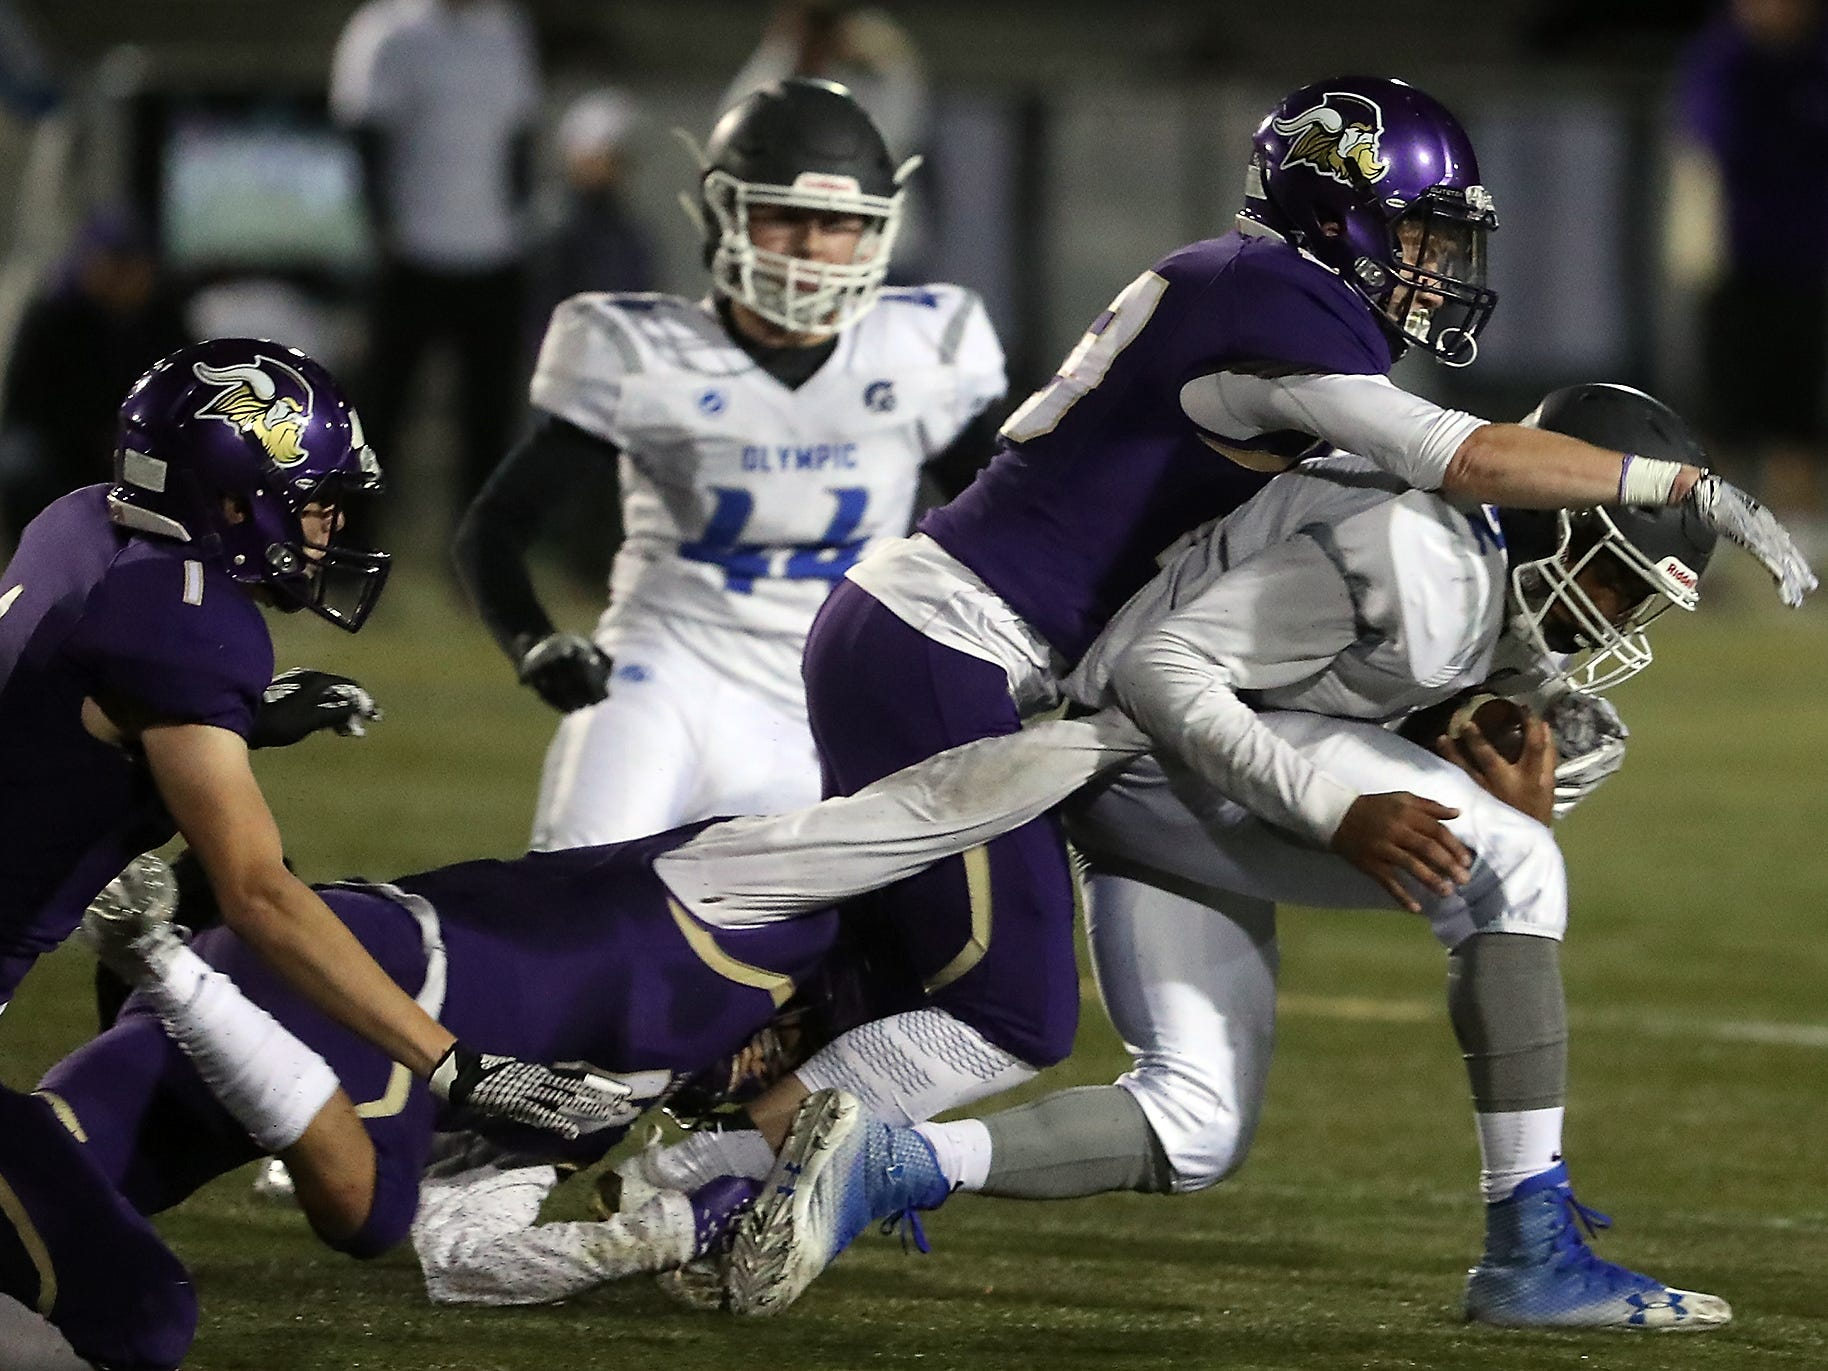 North Kitsap vs Olympic football in Poulsbo on Friday, October 26, 2018.